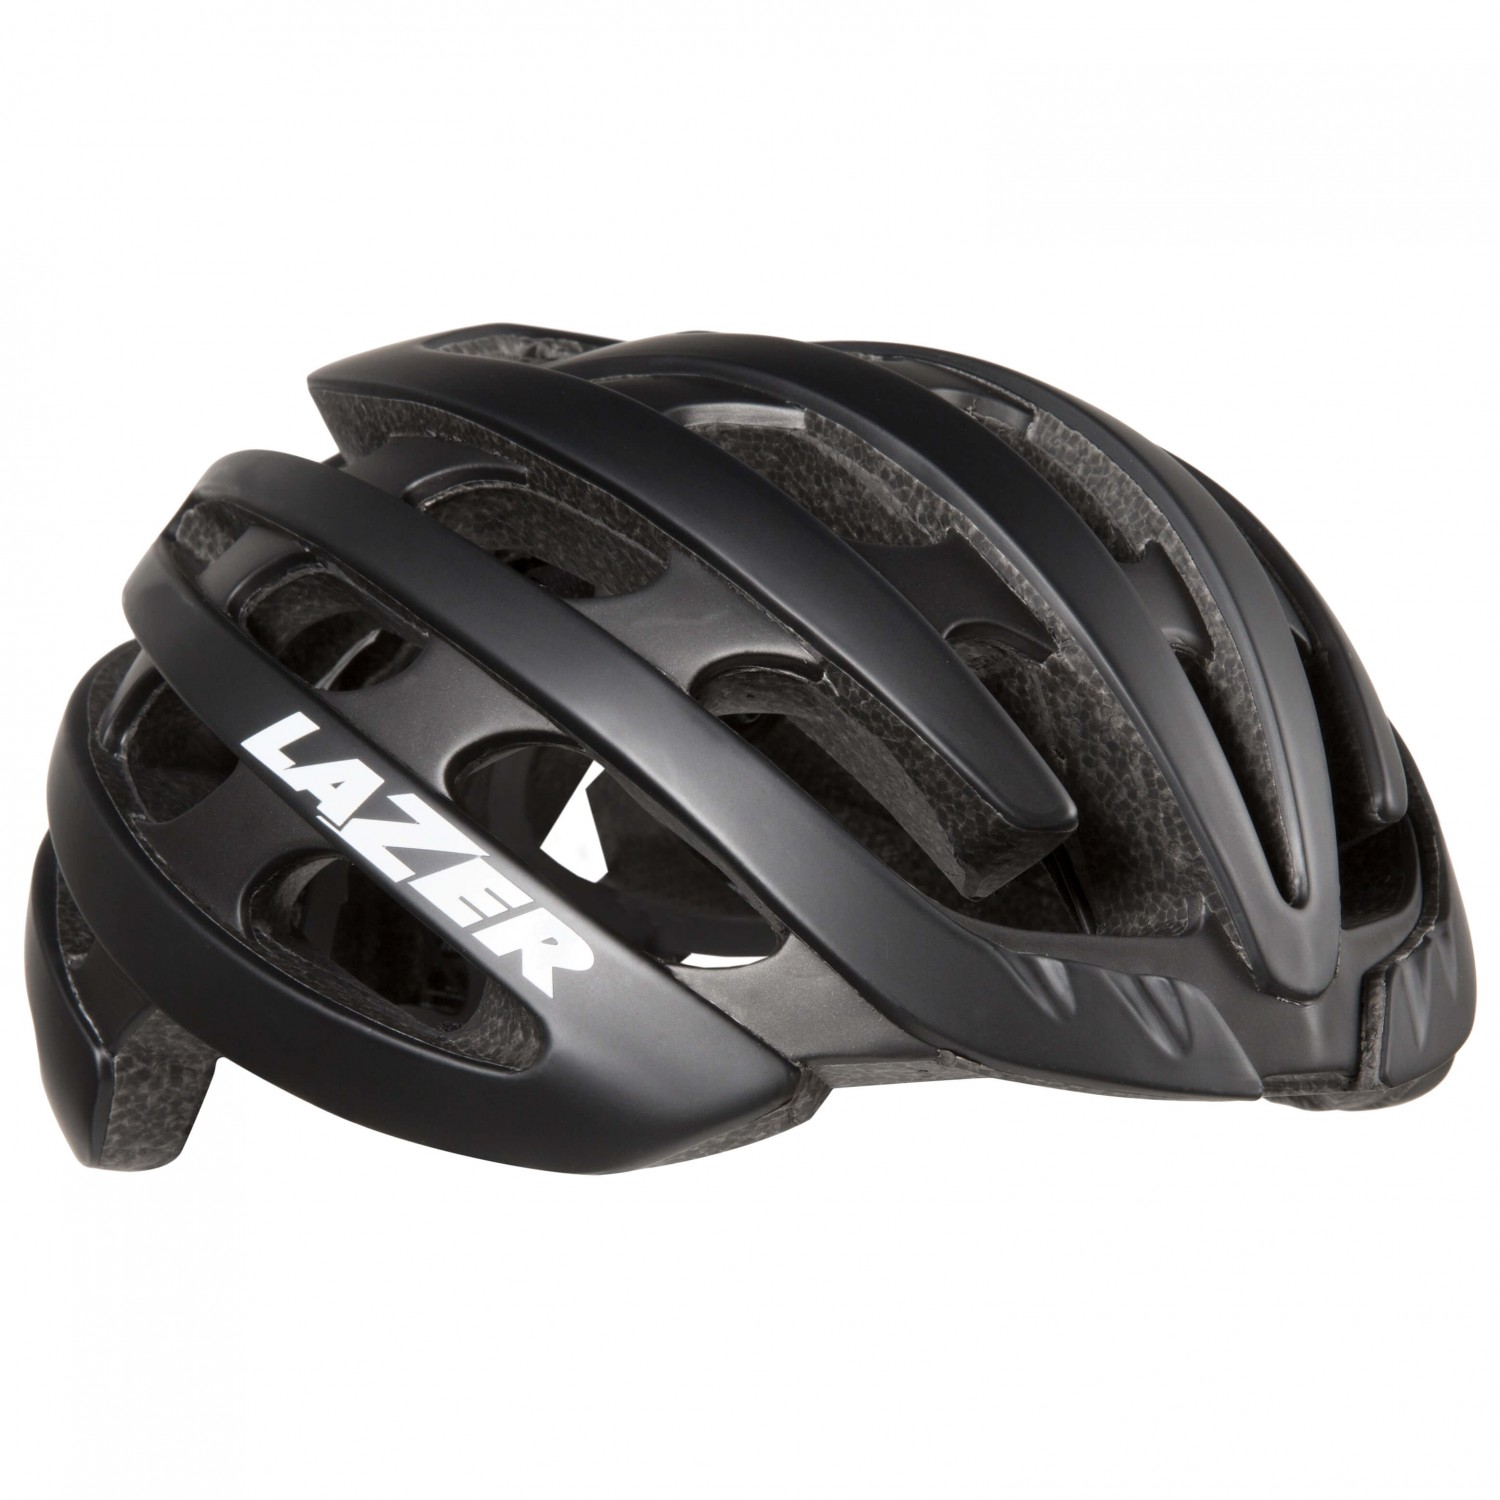 lazer z1 mips bicycle helmet free uk delivery. Black Bedroom Furniture Sets. Home Design Ideas